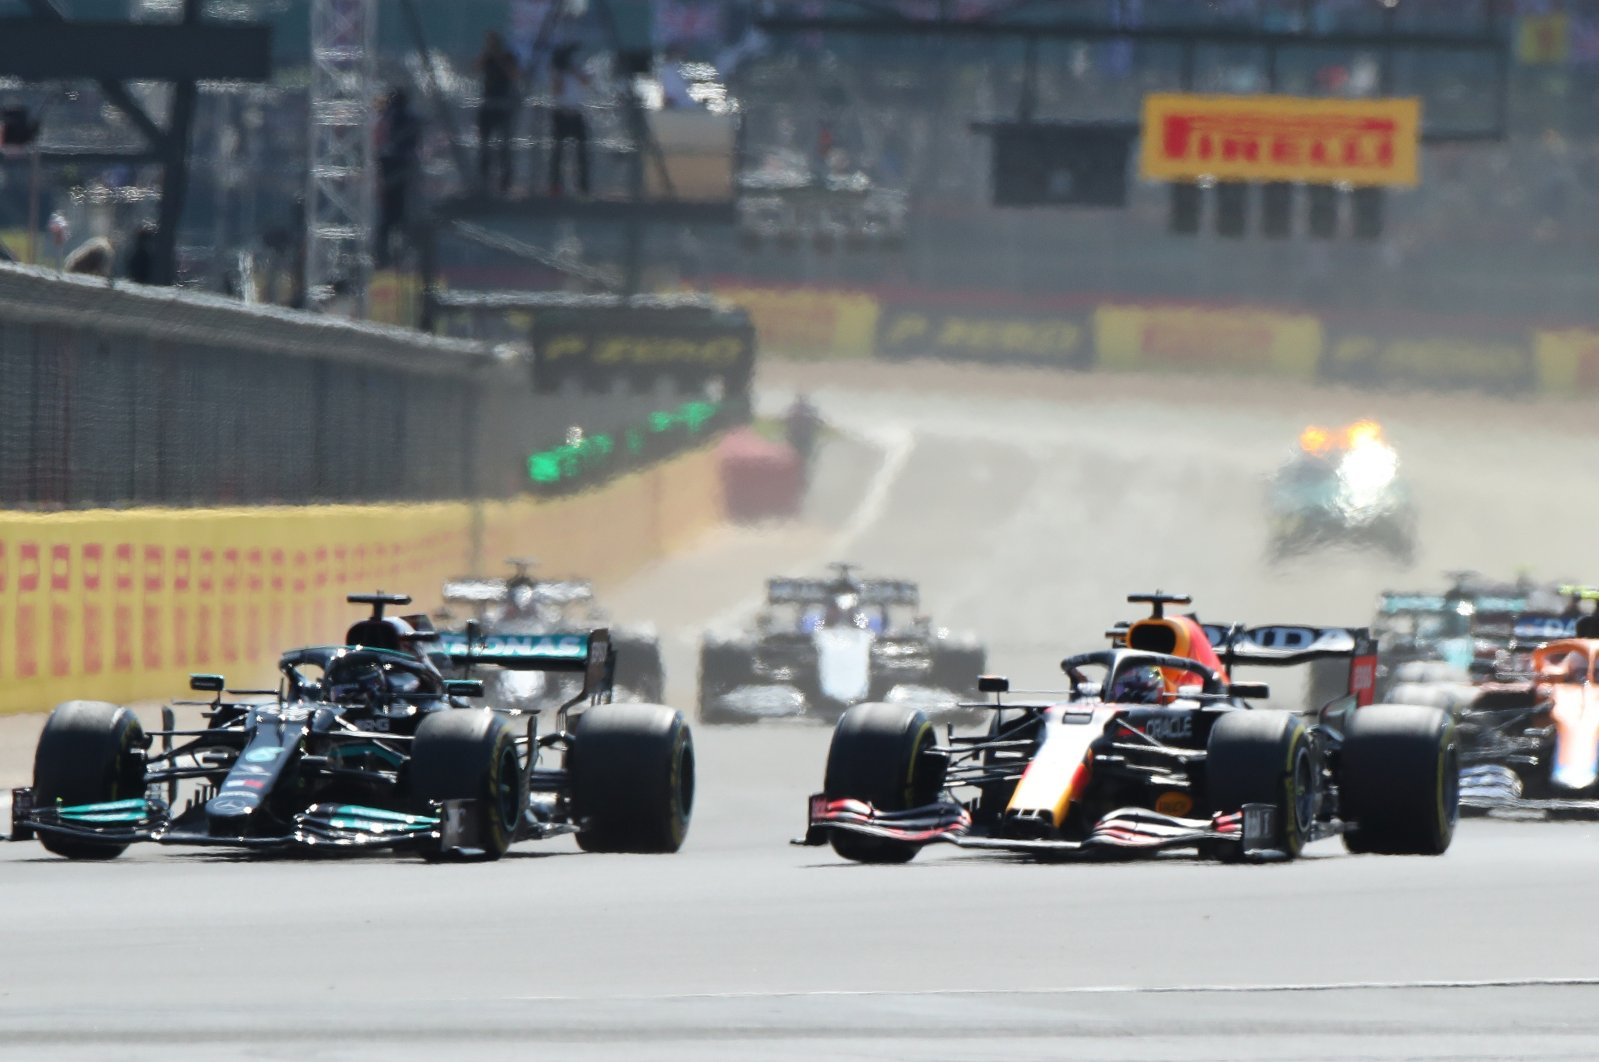 Red Bull's Max Verstappen leads at the start of the British Grand Prix ahead of Mercedes' Lewis Hamilton, Silverstone Circuit, Silverstone, England, July 18, 2021. (Reuters Photo)